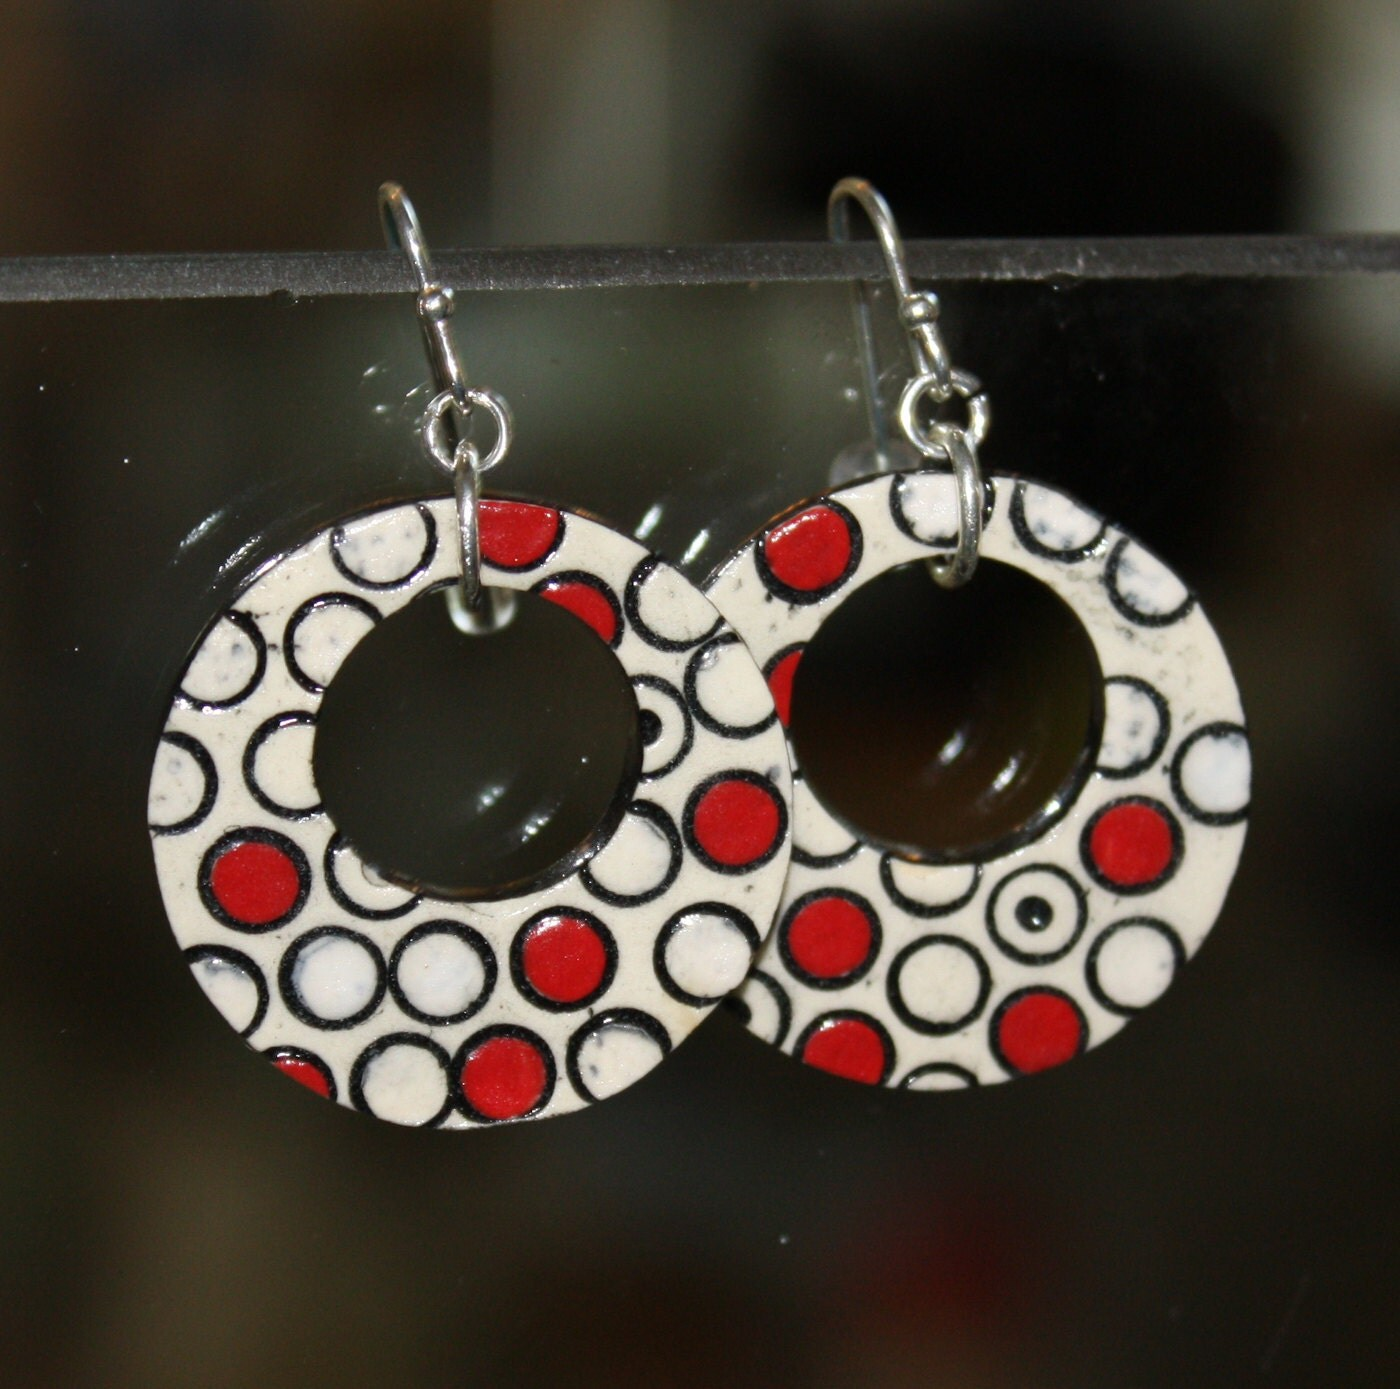 Polka Dots Handmade Ceramic Earrings